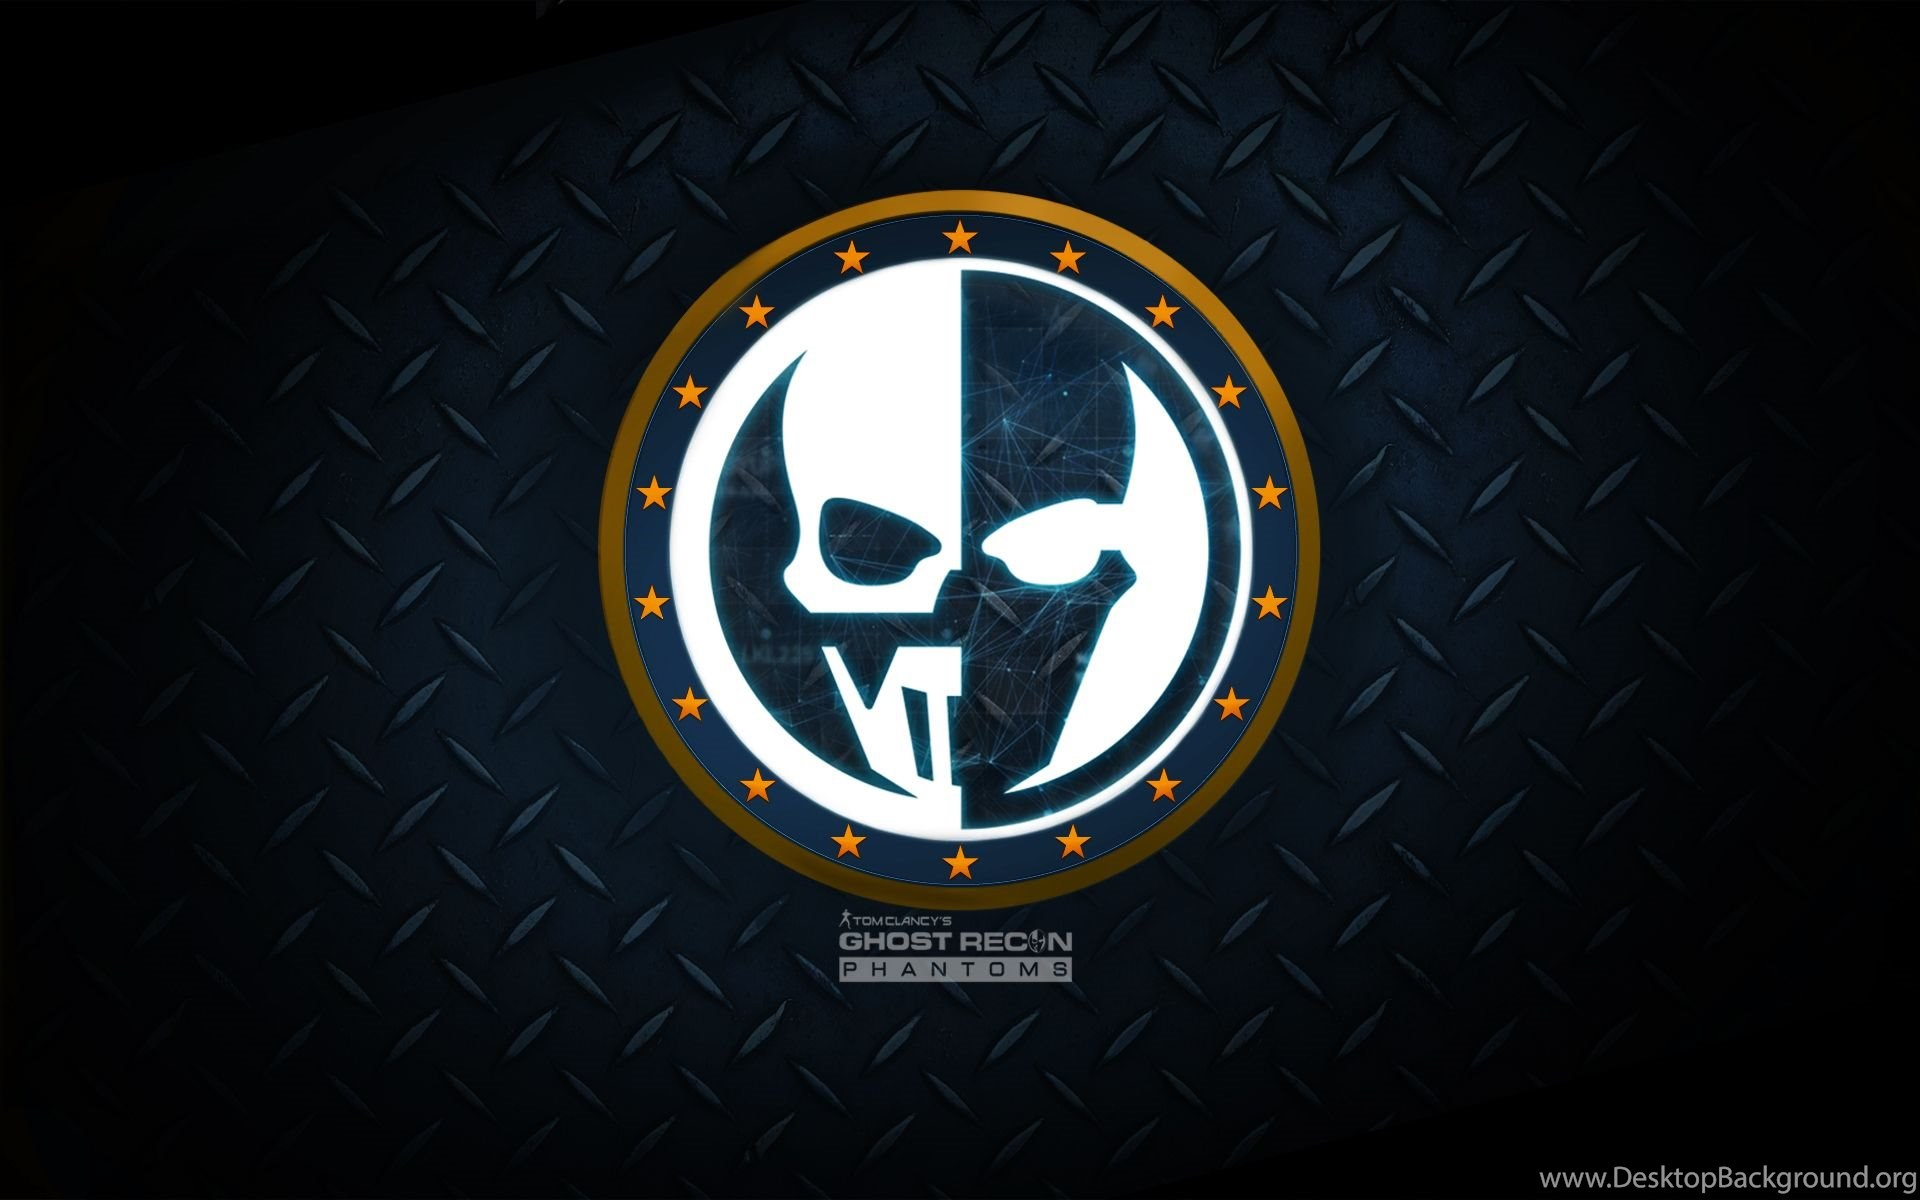 Tom Clancy S Ghost Recon Phantoms Wallpaper By Spidermonkey23 On